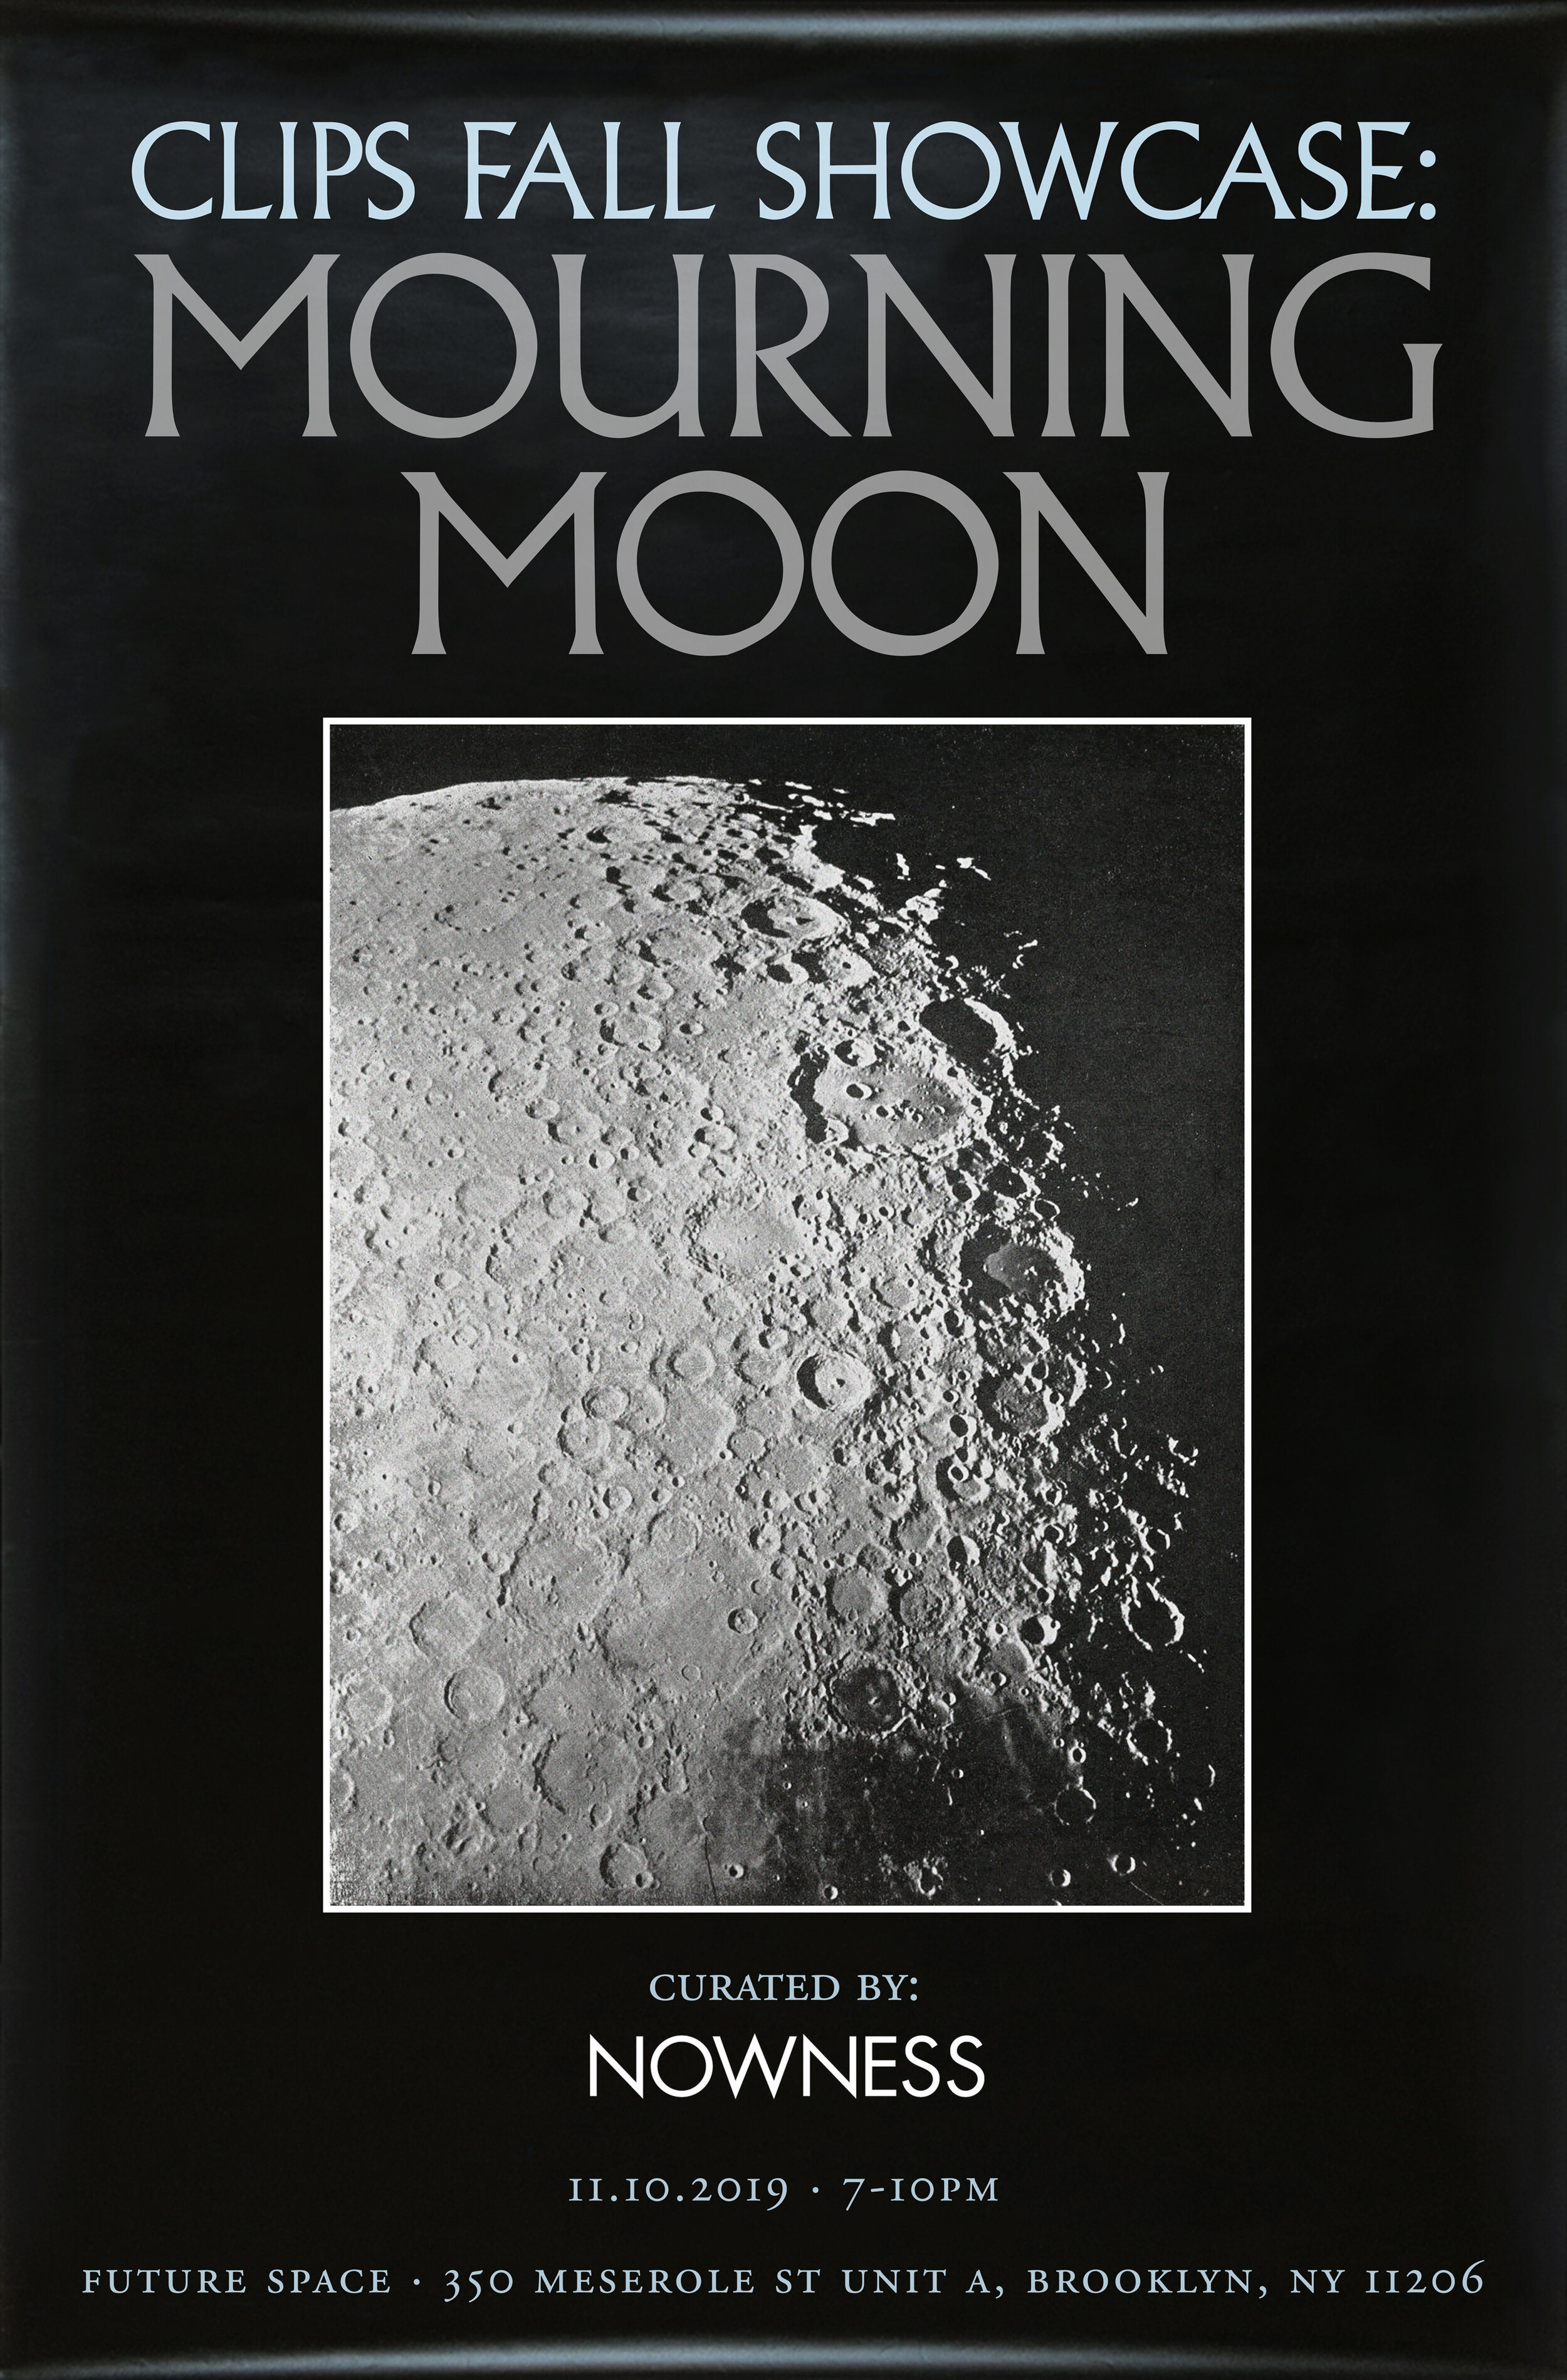 clips mourning moon poster resized.jpg